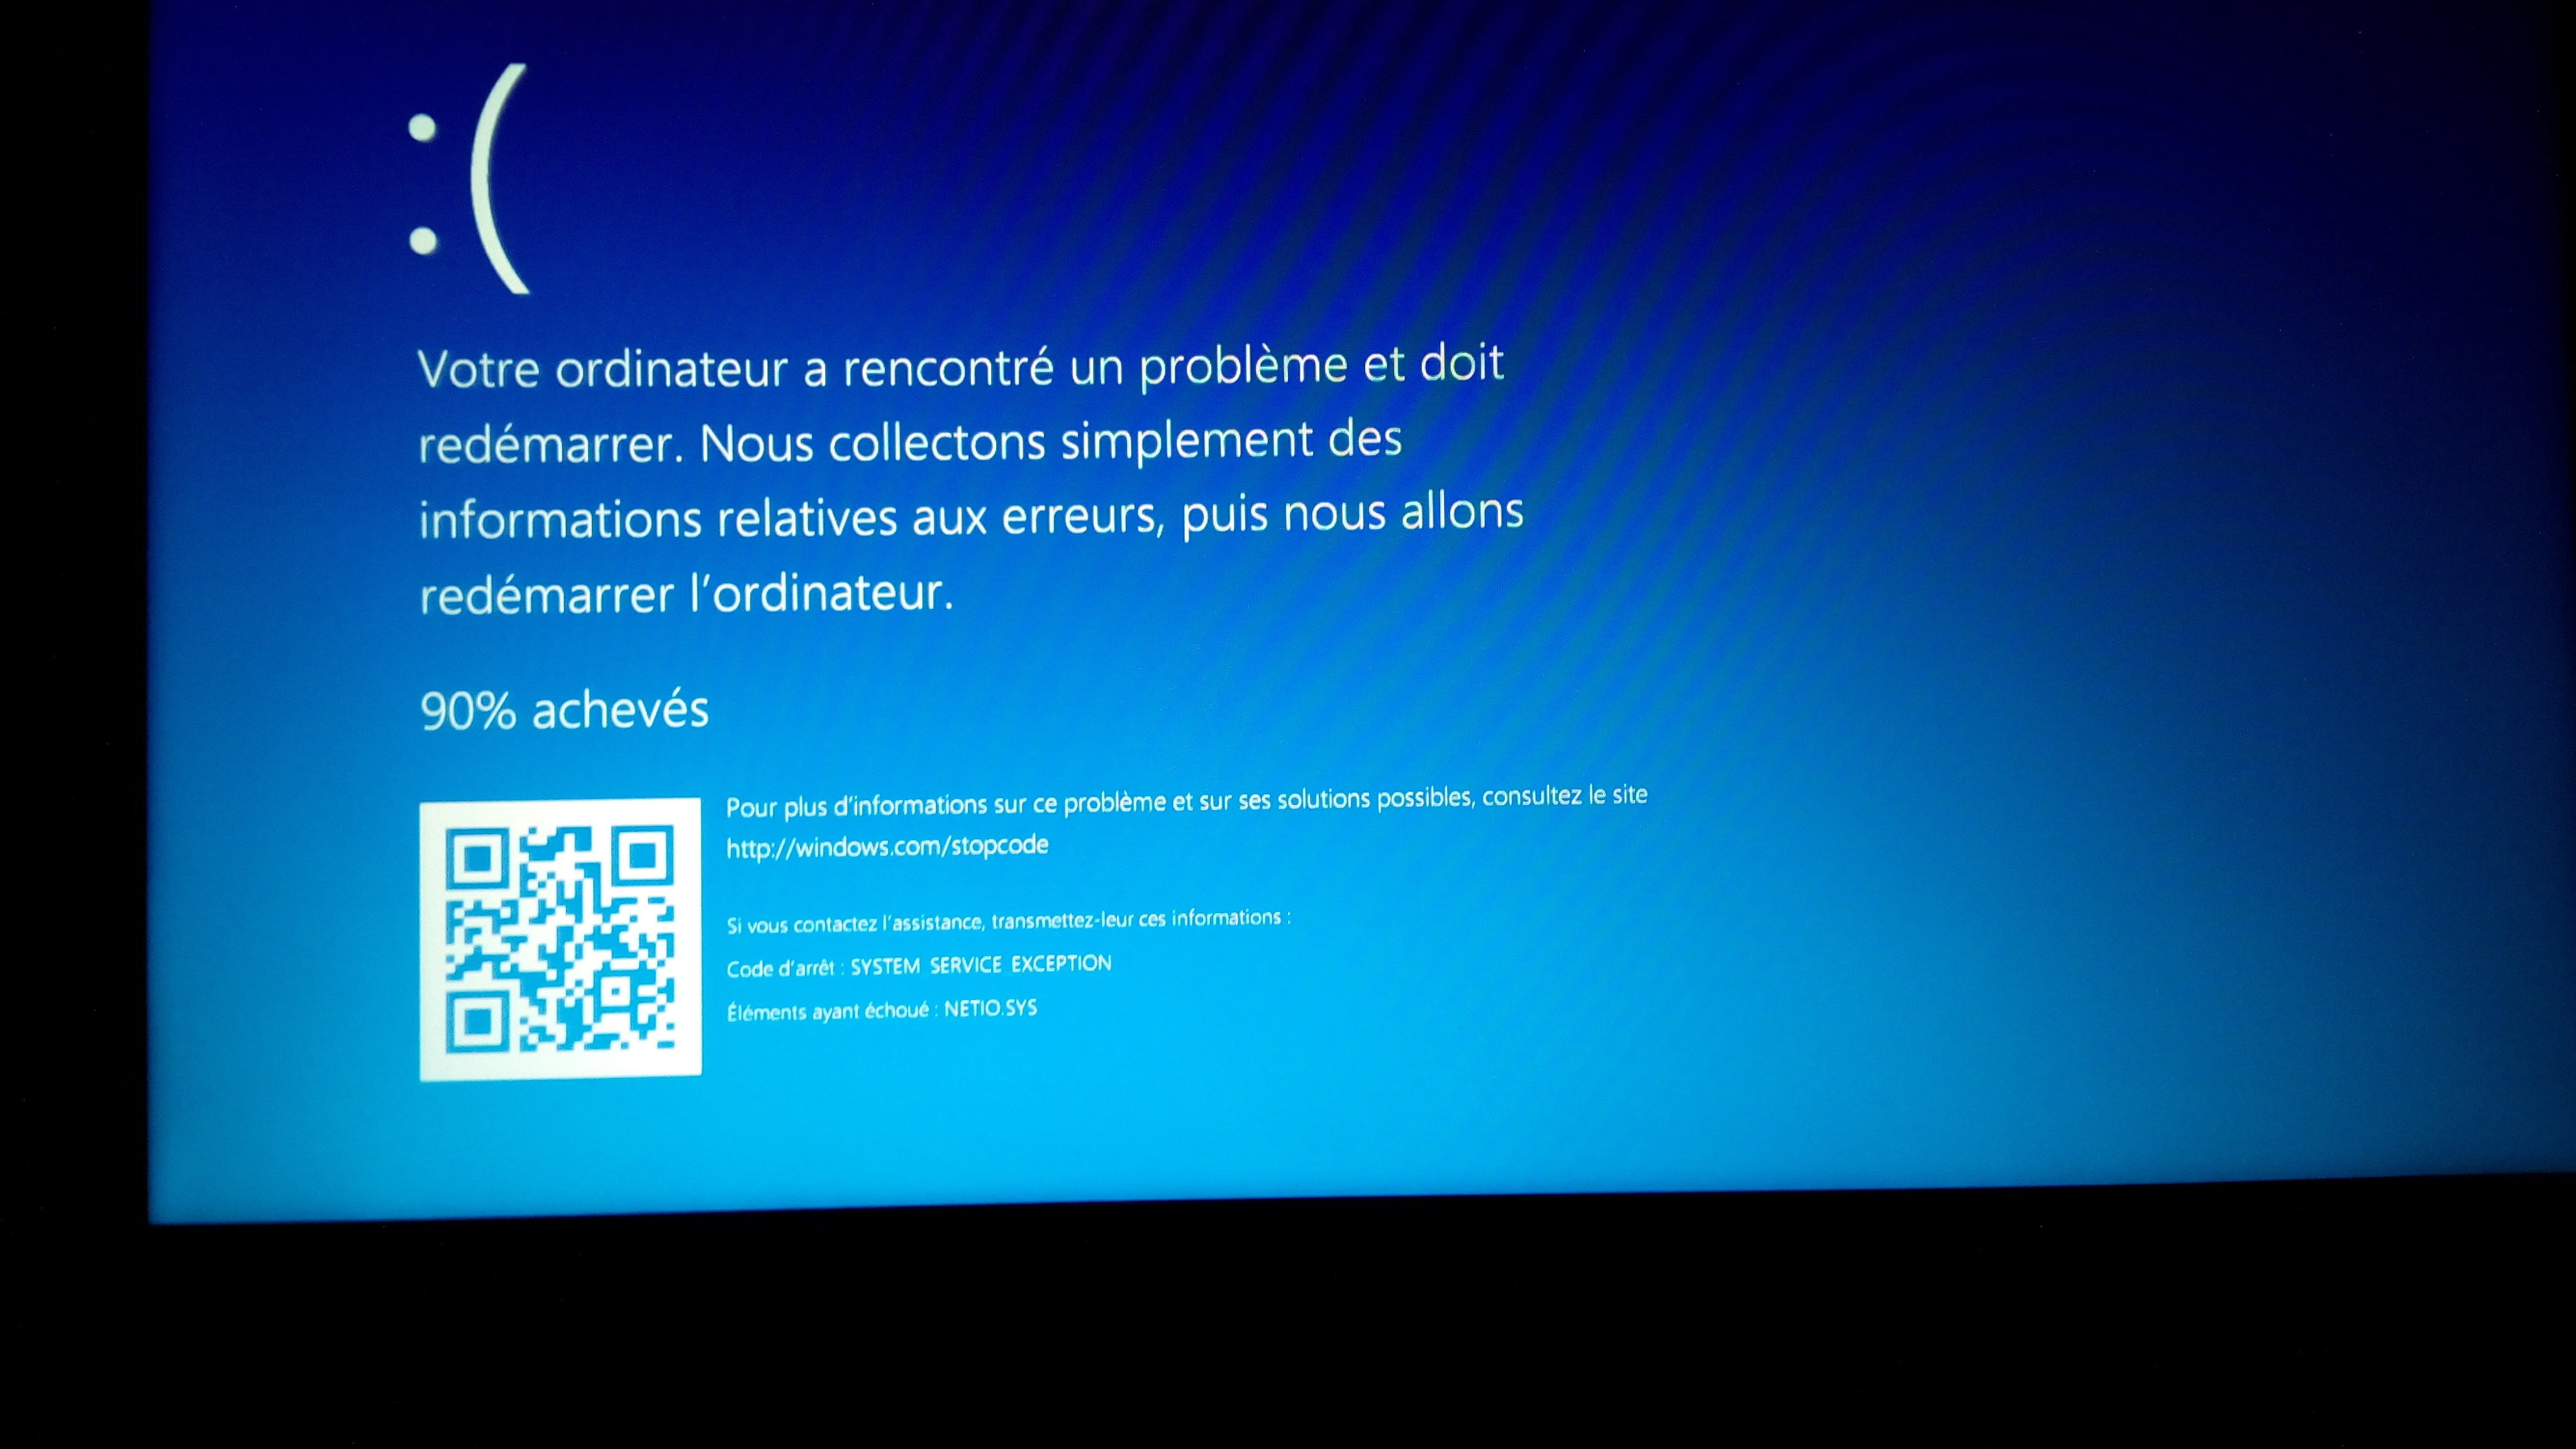 Windows rencontr un probl me et doit red marrer - Communaut HP